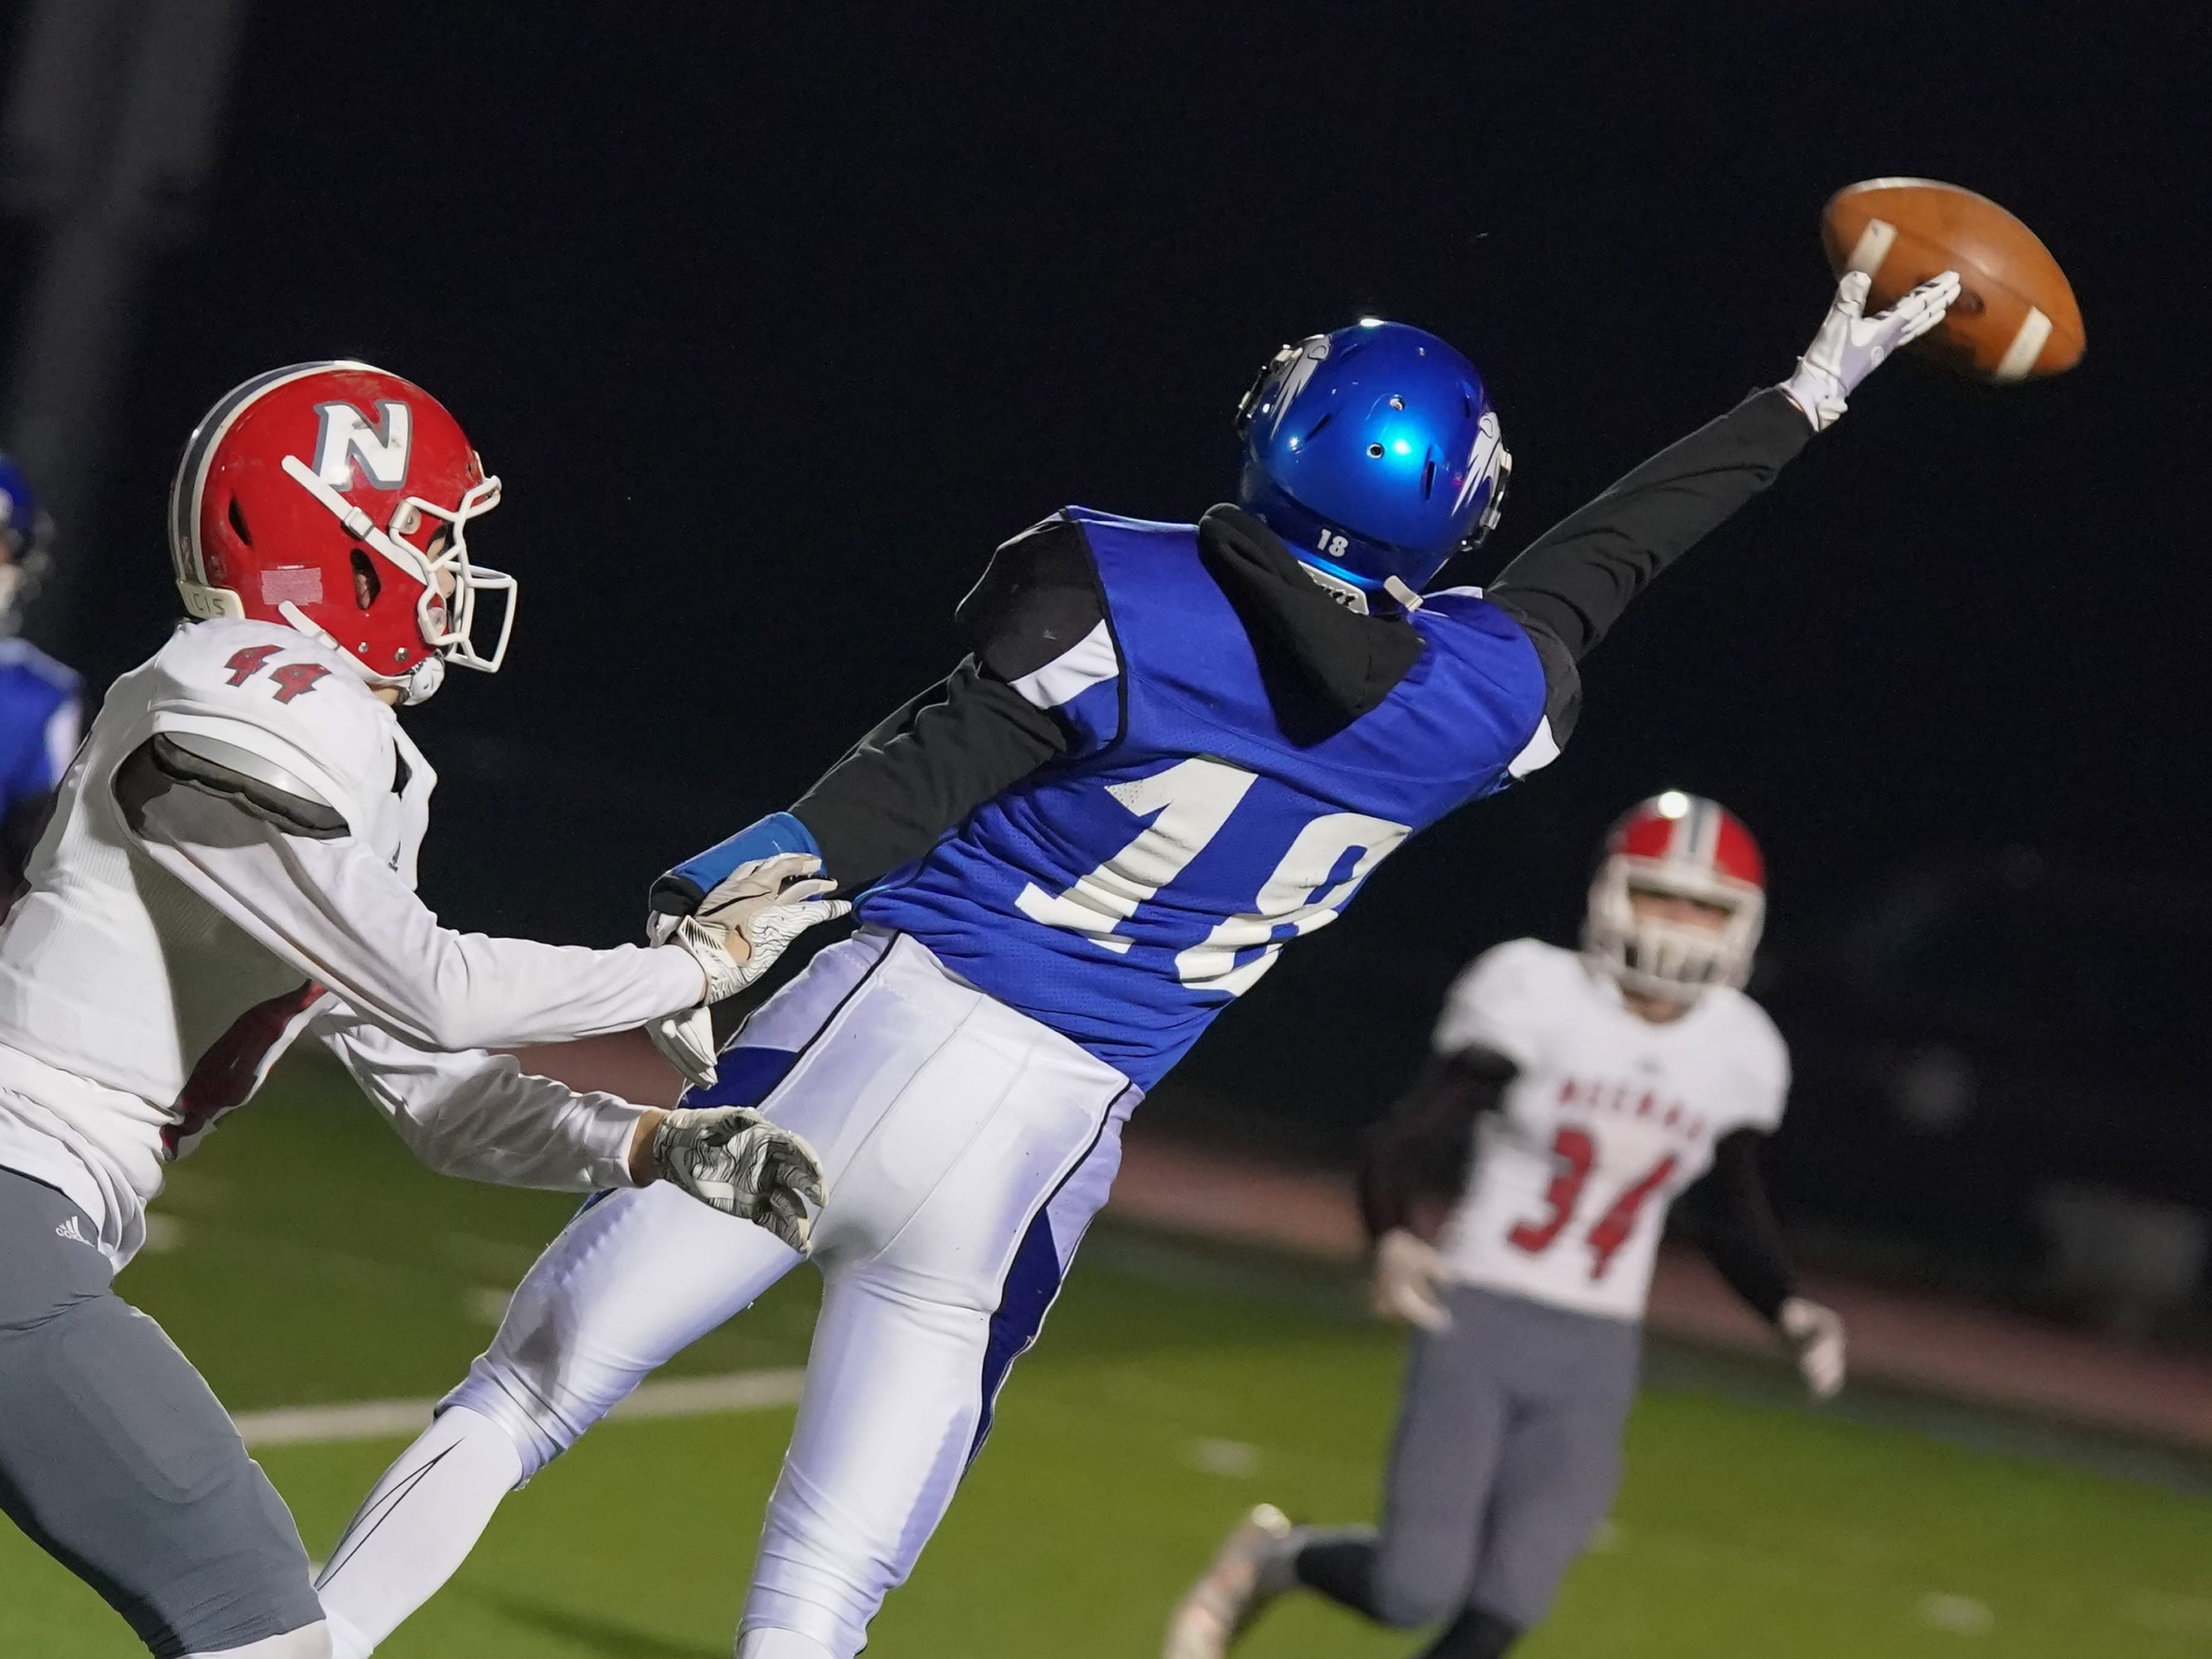 A.J. Ambroso (18) of Oshkosh West can't hang on to a pass near the end zone. The Oshkosh West Wildcats hosted the Neenah Rockets in an FVA-South conference matchup Friday evening, October 12, 2018 at J. J. Keller Field at Titan Stadium.